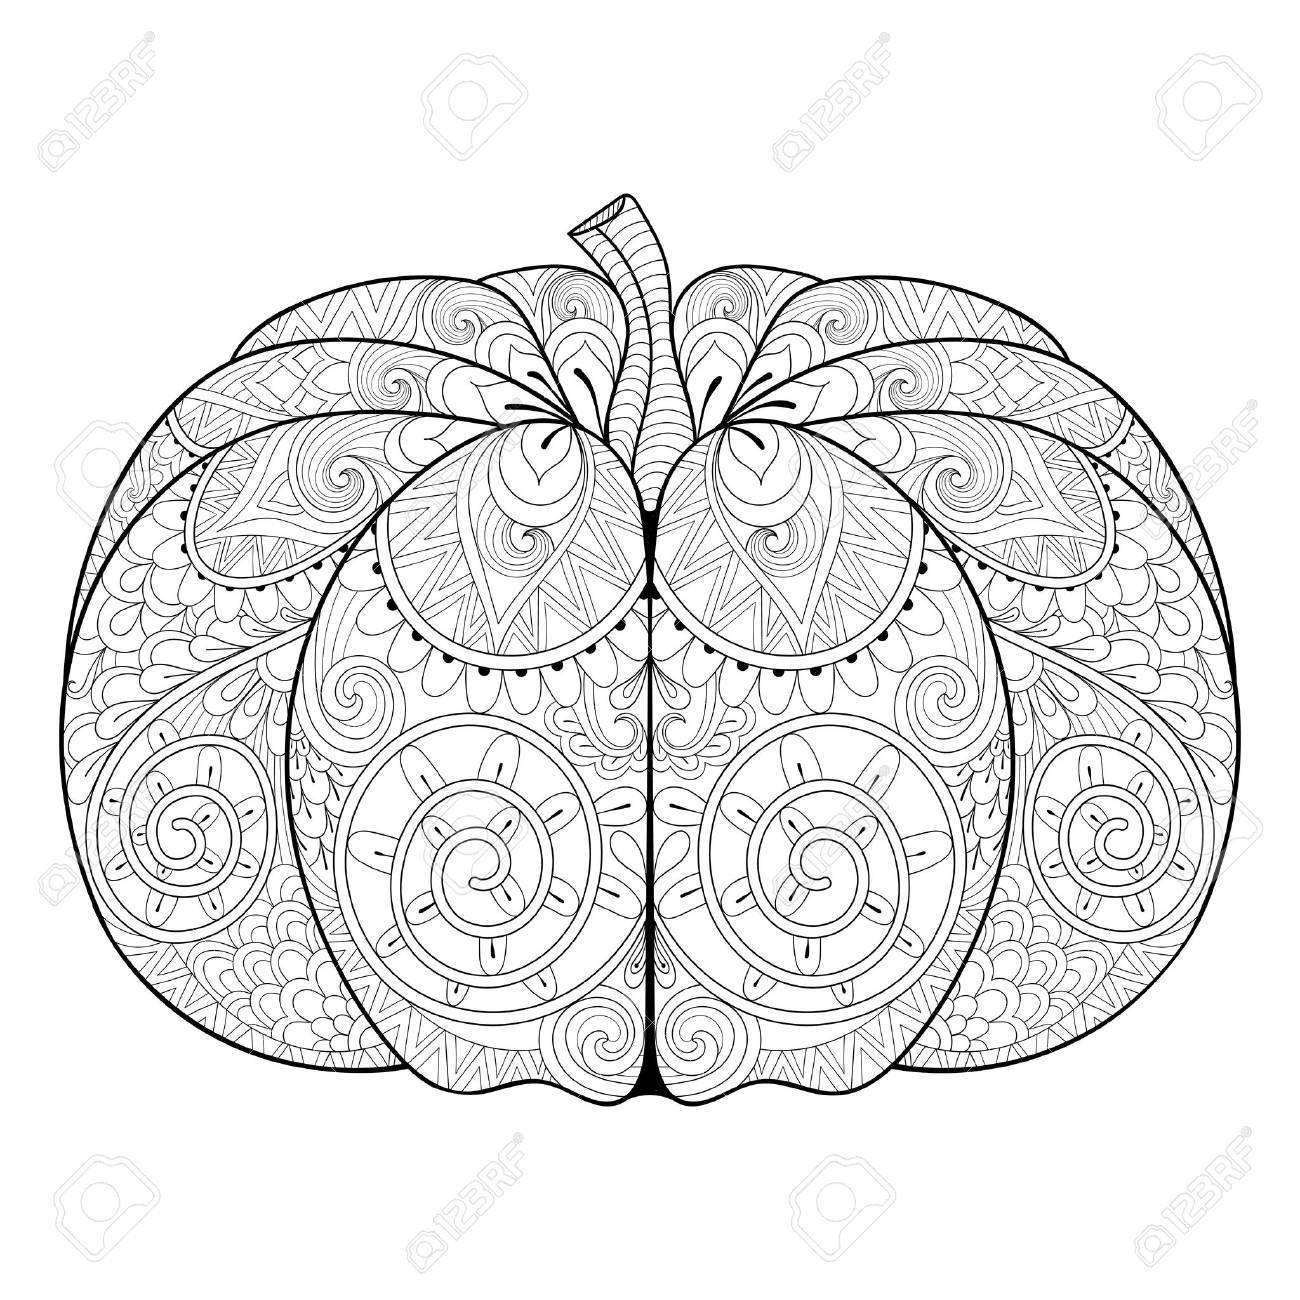 Stylized Autumn Pumpkin For Thanksgiving Day, Halloween. Freehand ...